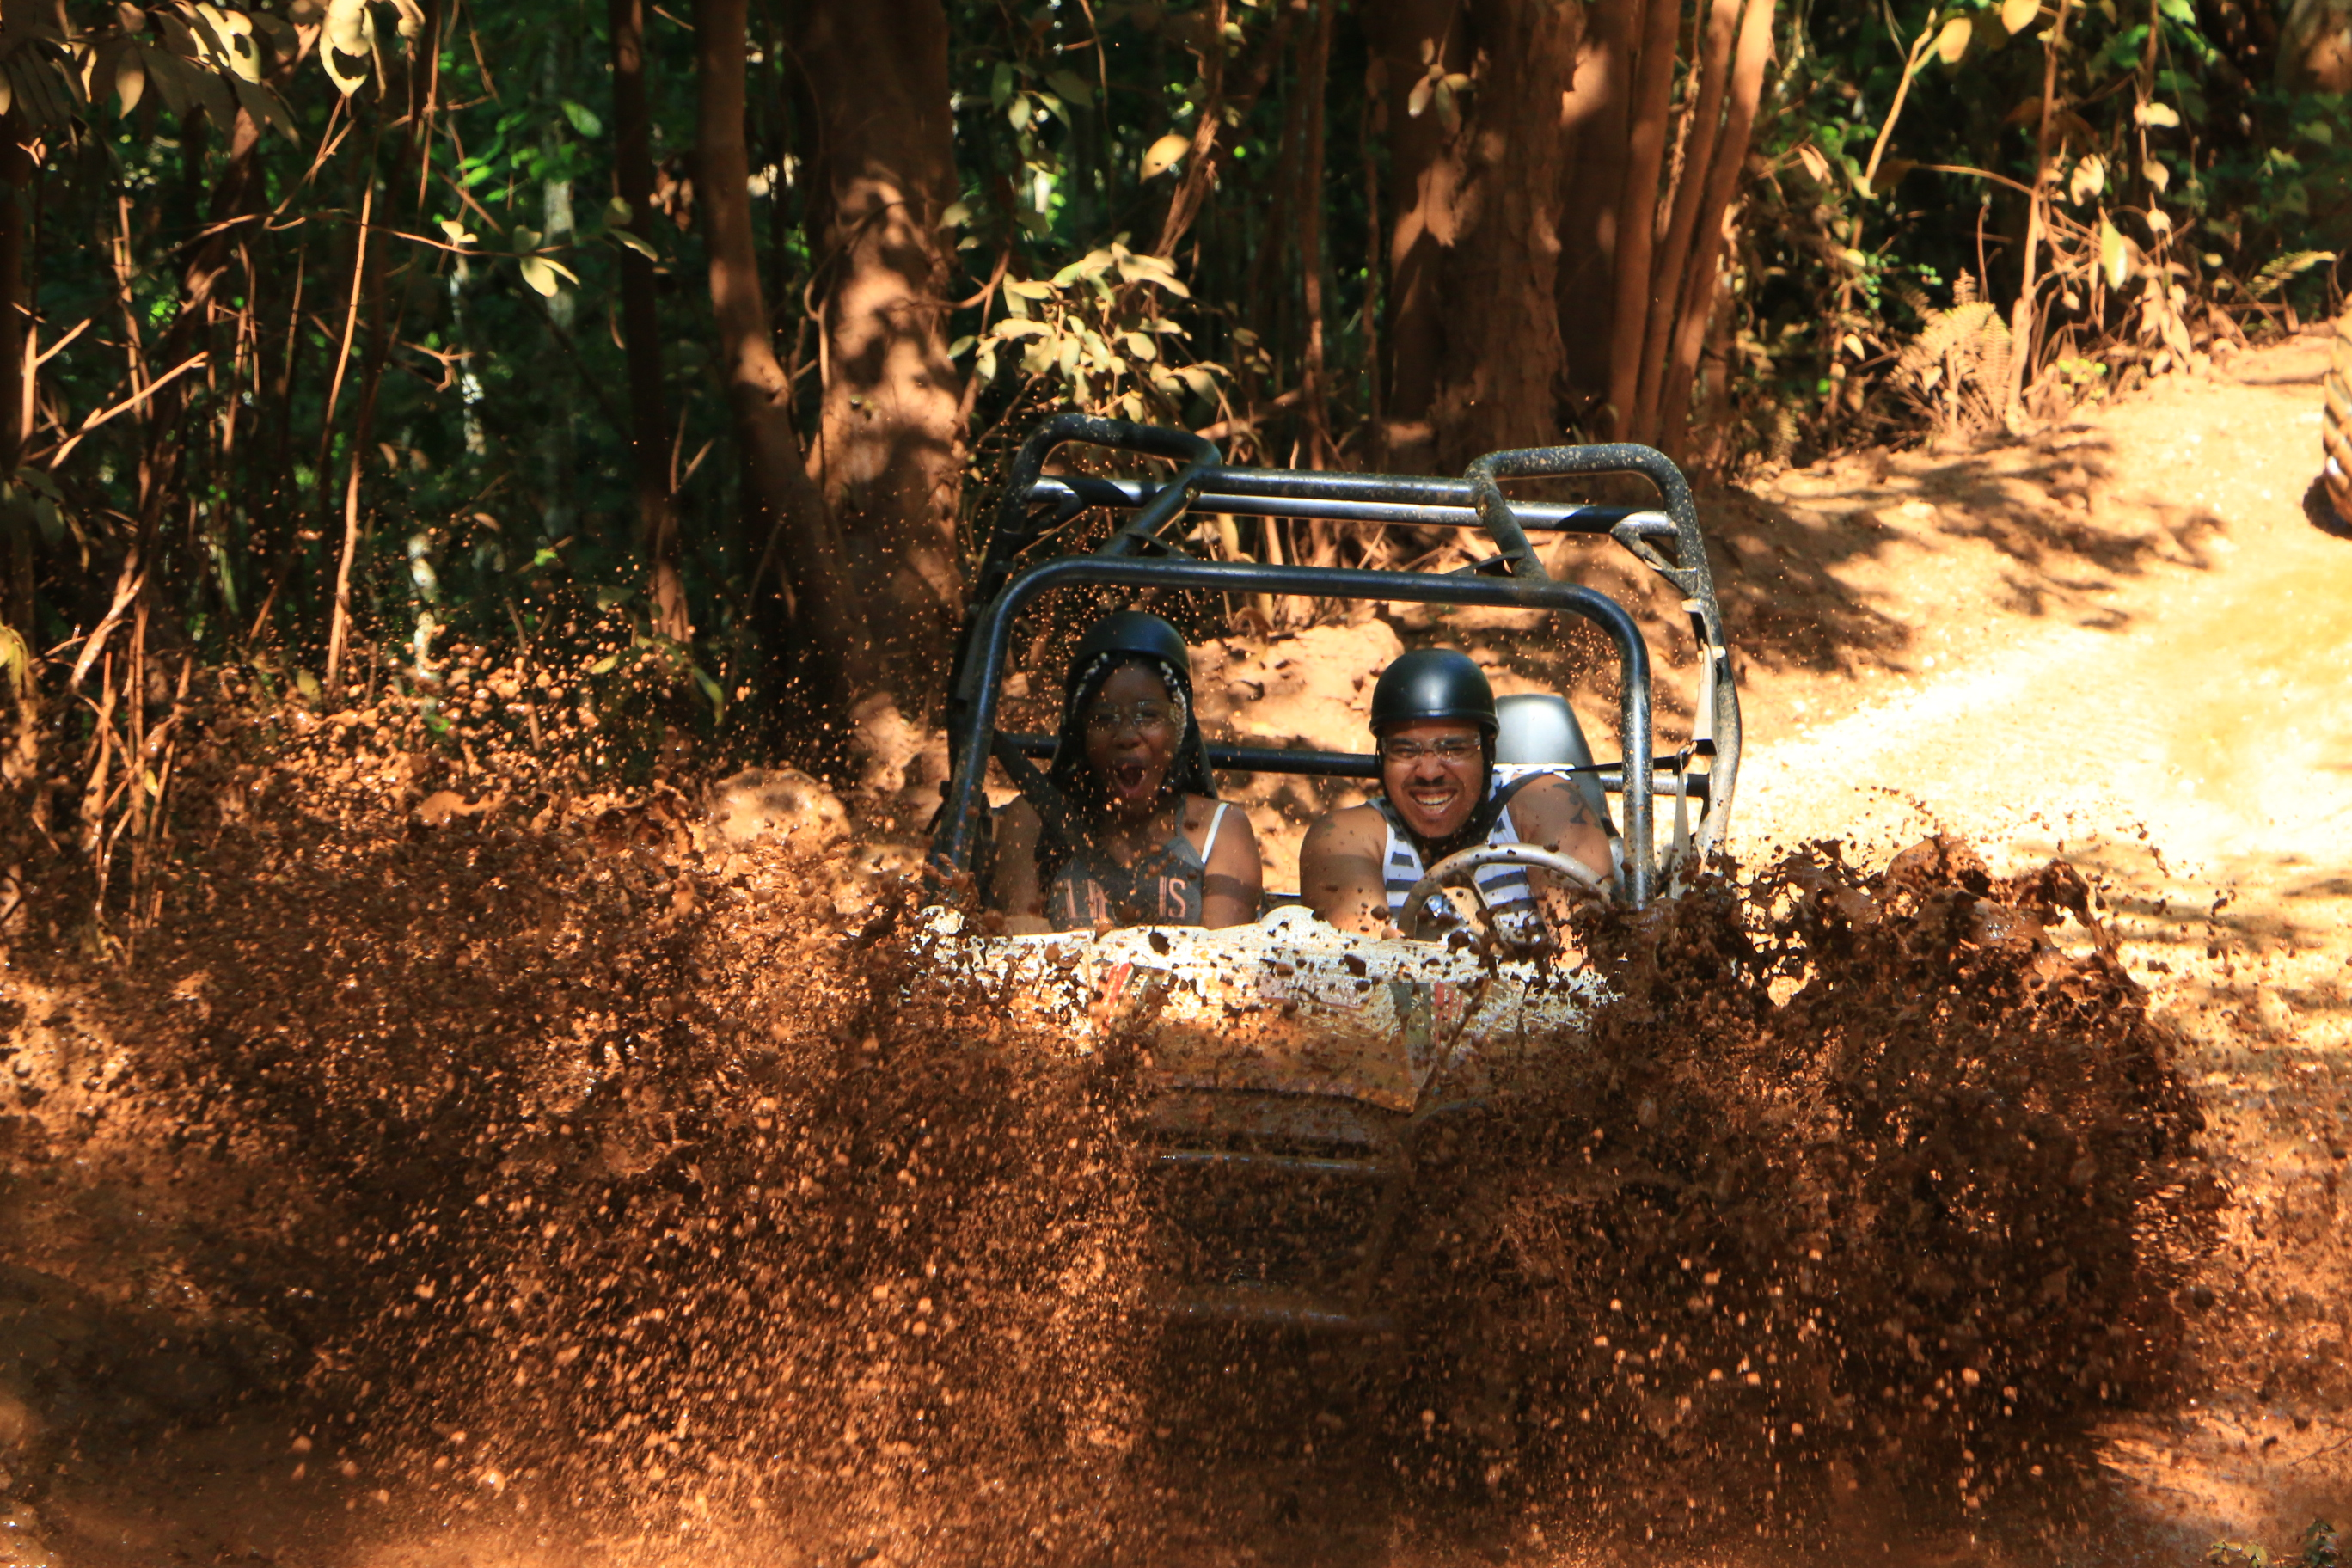 Throw some dirt on this ride